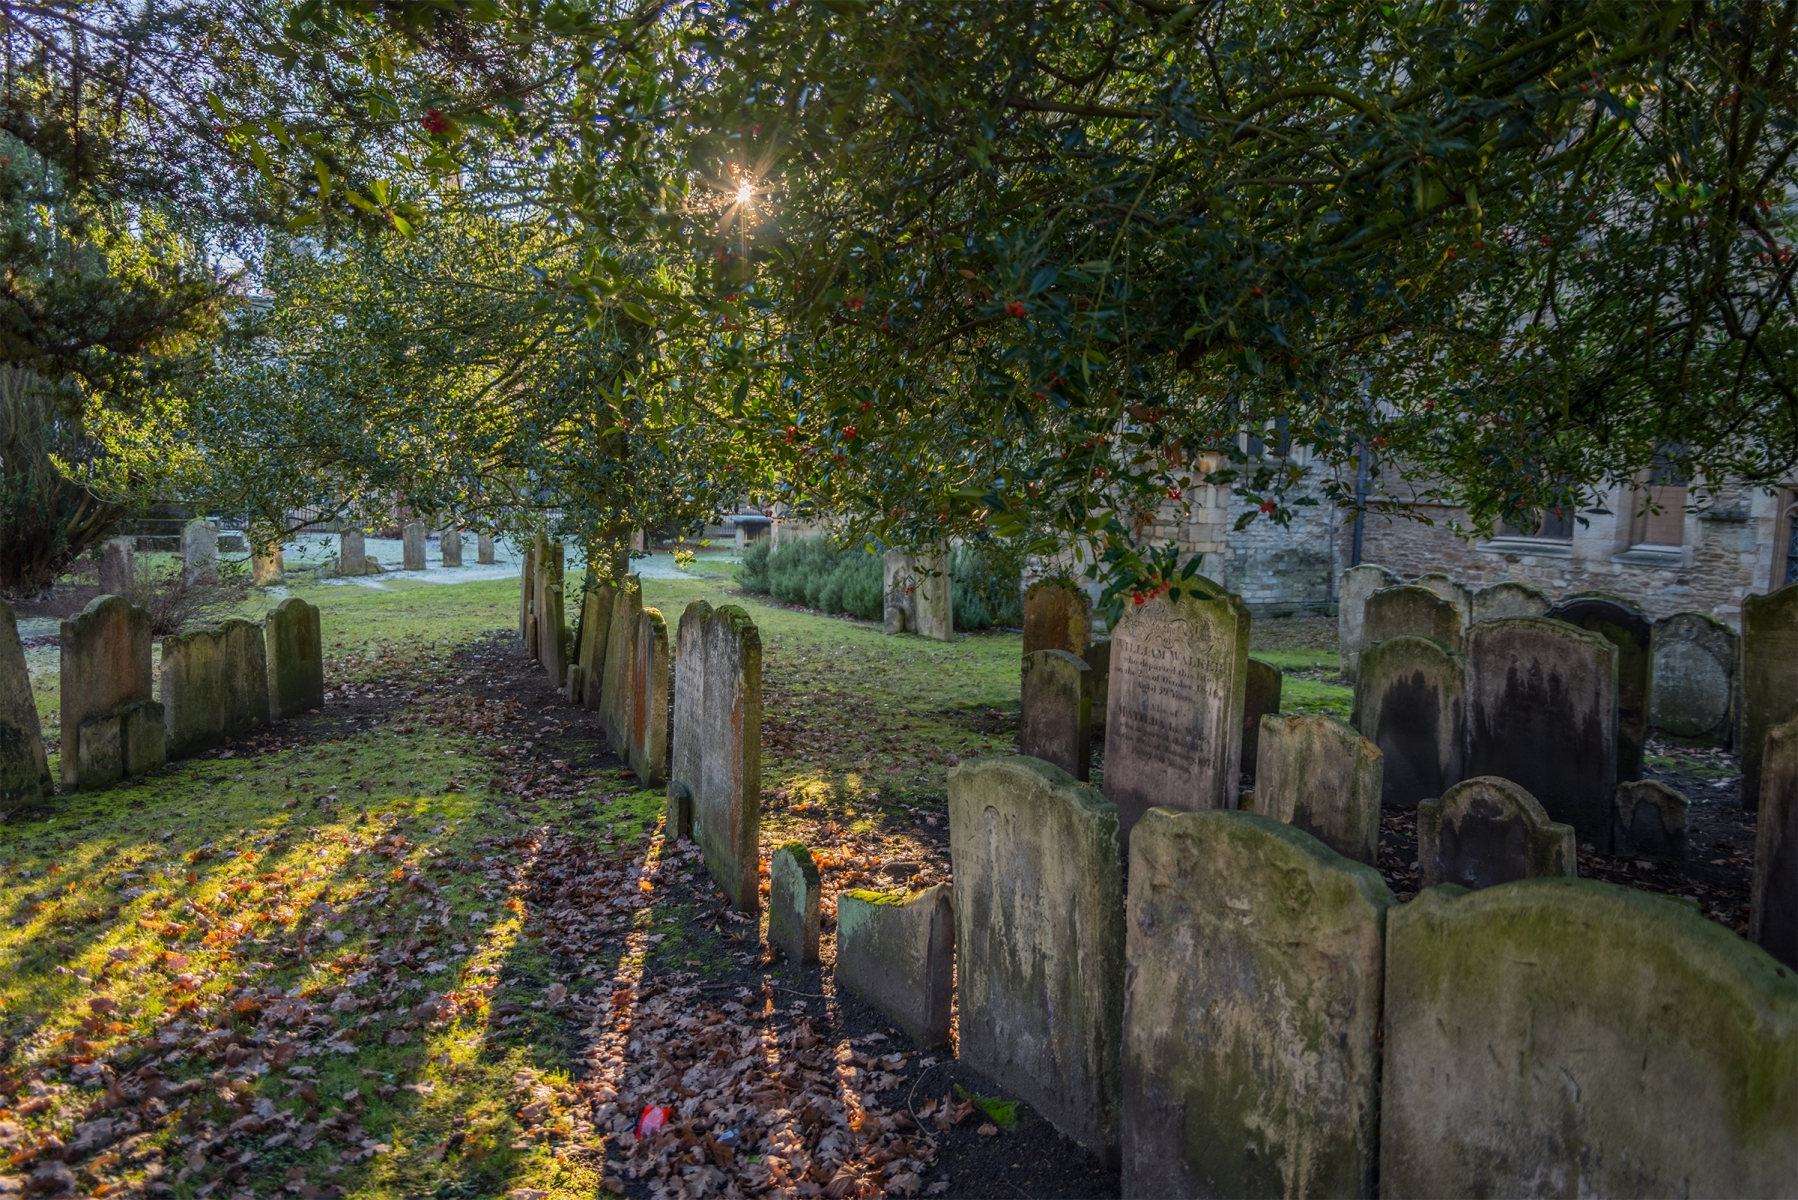 St Paul's Church graveyard, Bedford, Bedfordshire